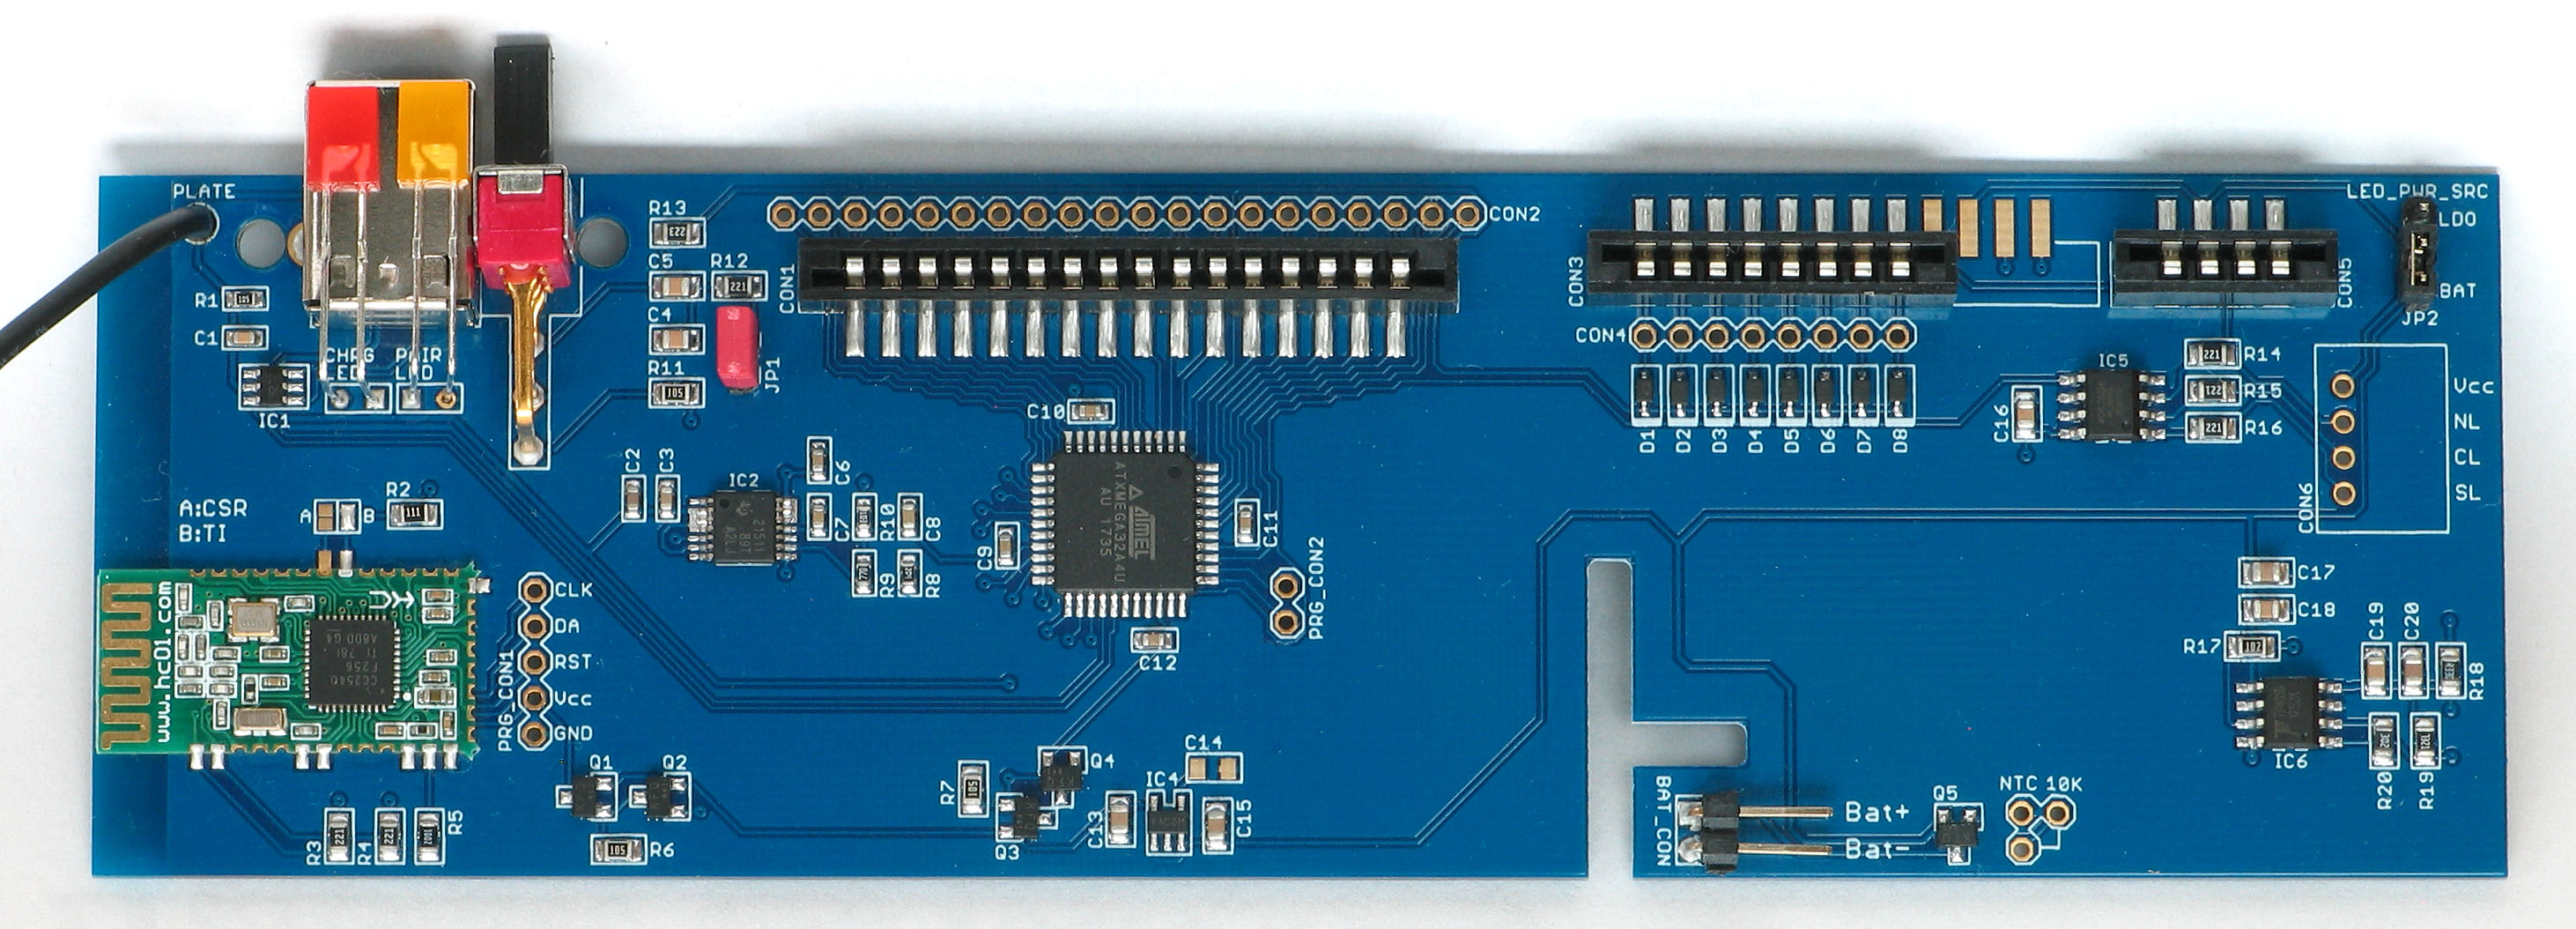 blusb_controller_main_pcb_rev_2_5_top.jpg